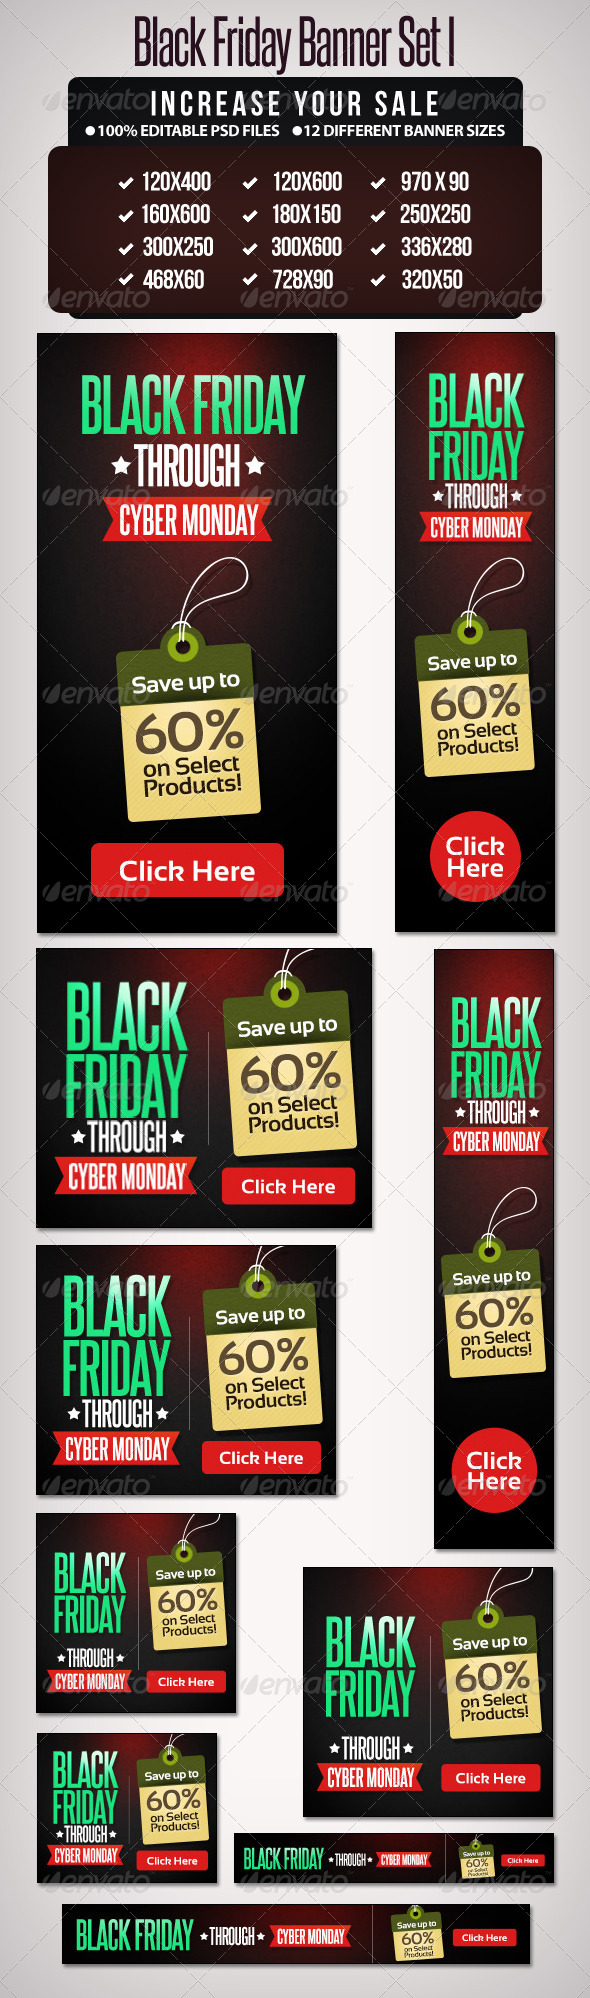 GraphicRiver Black Friday Banner Set 1 6238443